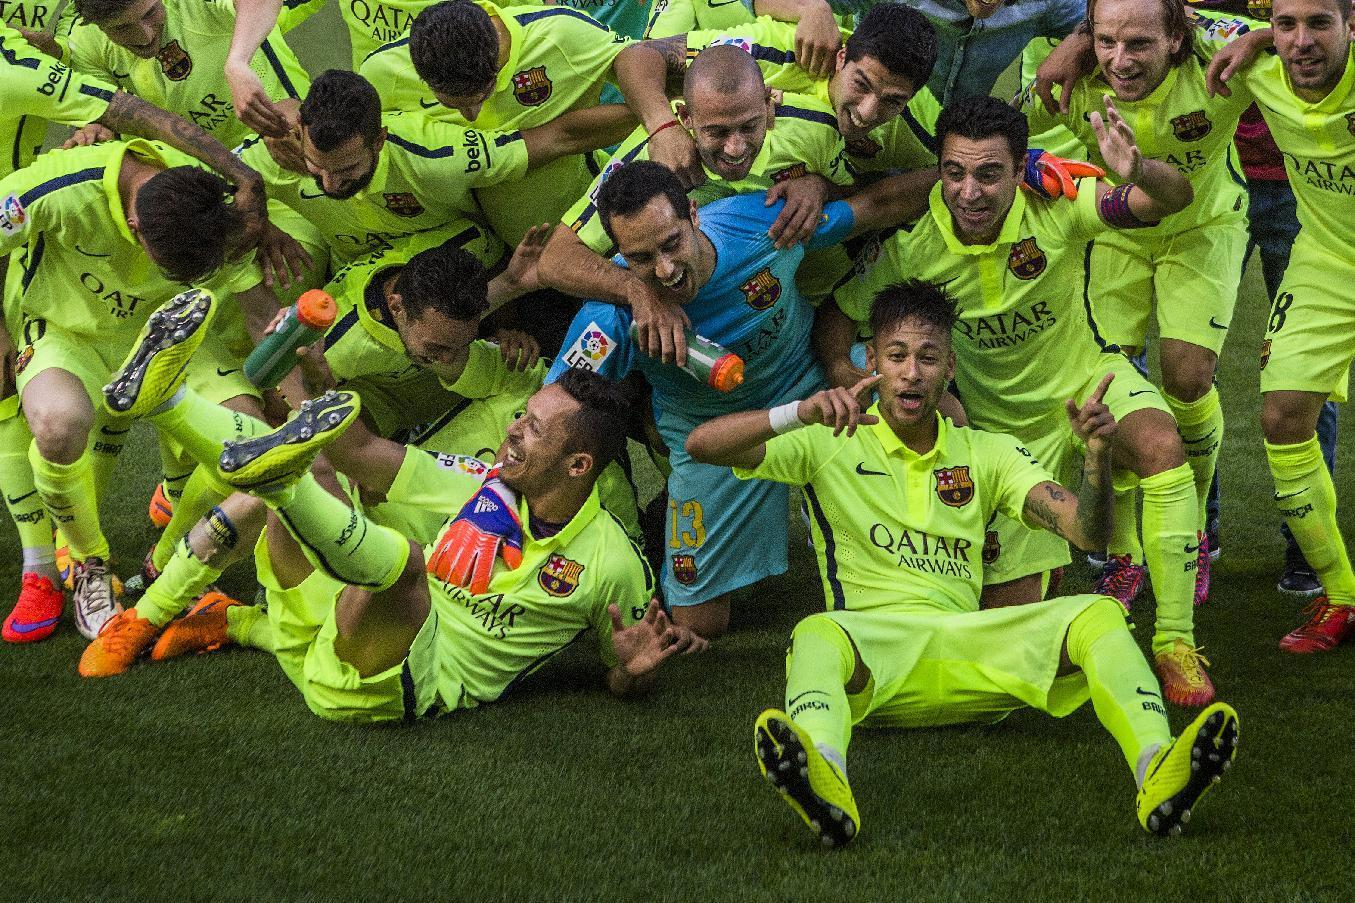 Relegation battle comes down to last day of Spanish league